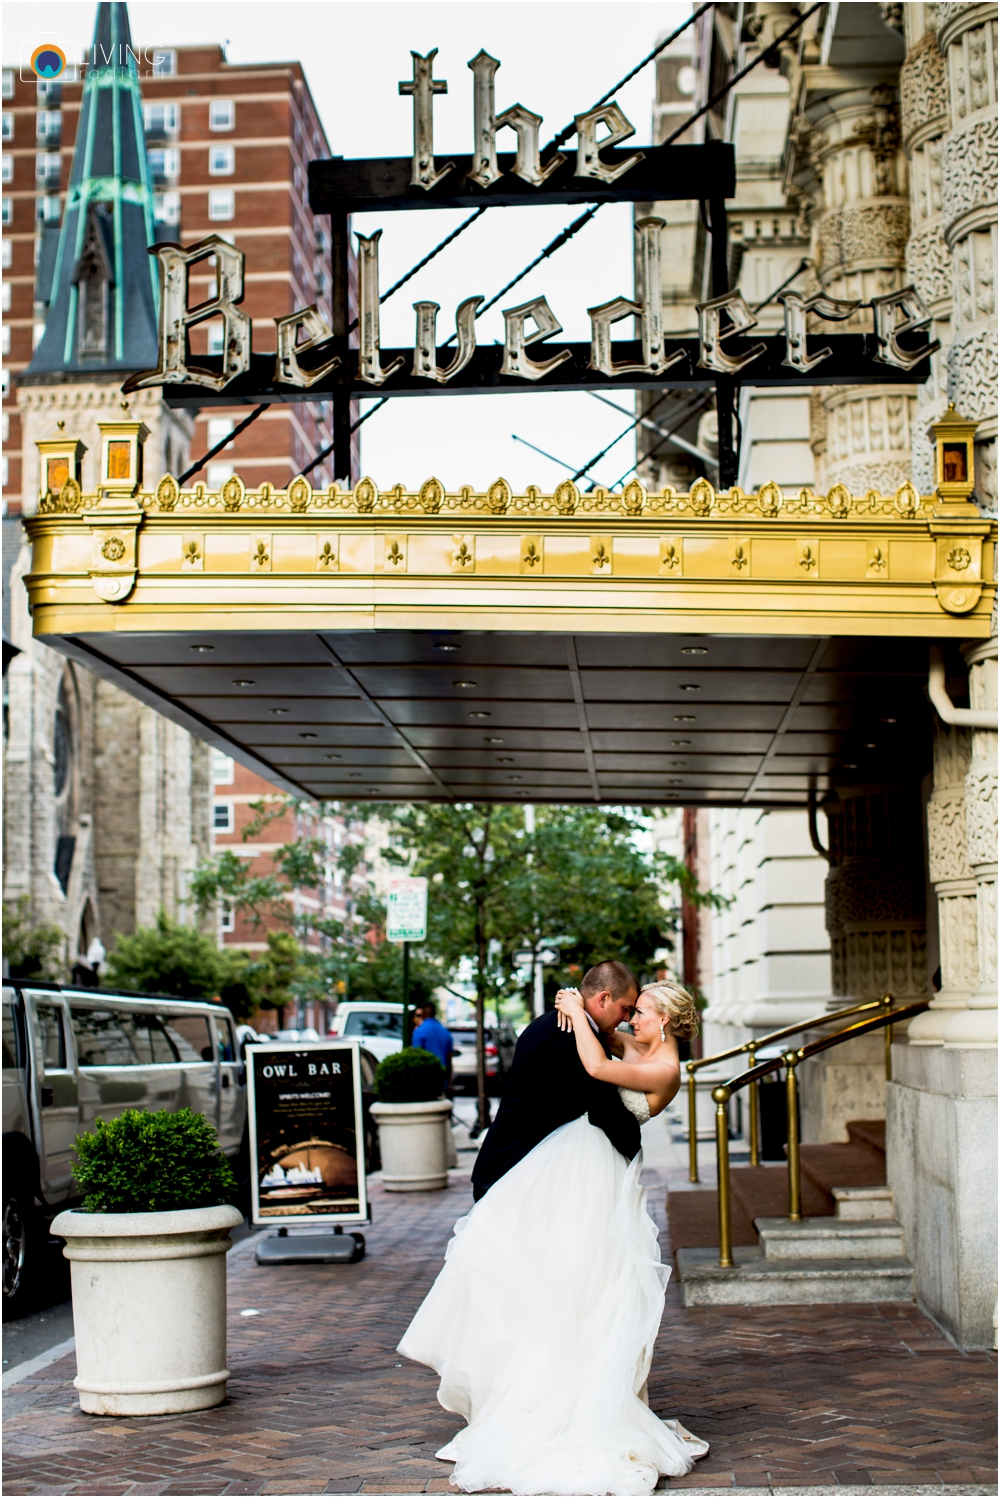 The-Belvedere-Hotel-Baltimore-Weddings-Inner-Harbor-Downtown-Living-Radiant-Photography-Ballroom-Wedding-Photos-Holmes-Wedding_0215.jpg